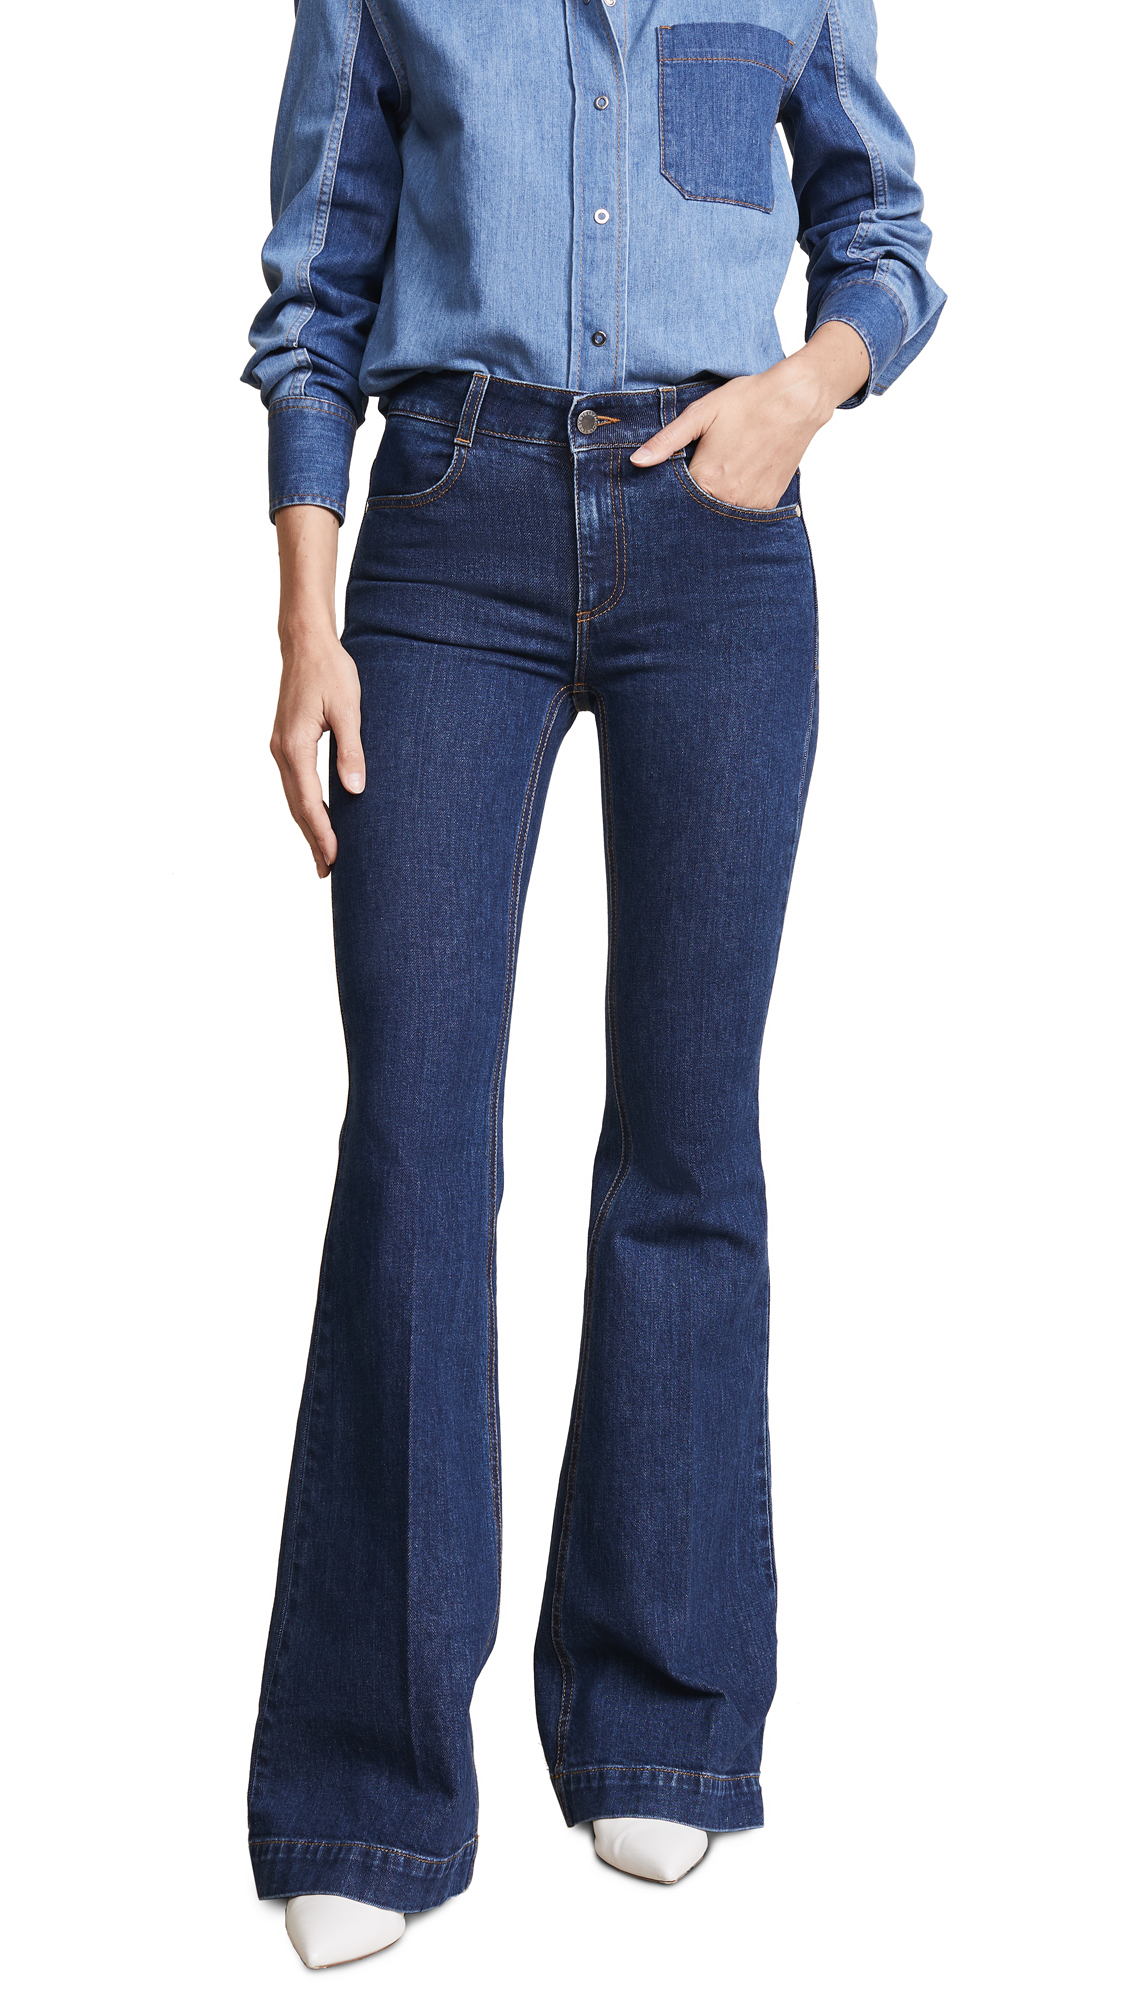 Stella McCartney The 70's Flare Jeans In Midnight